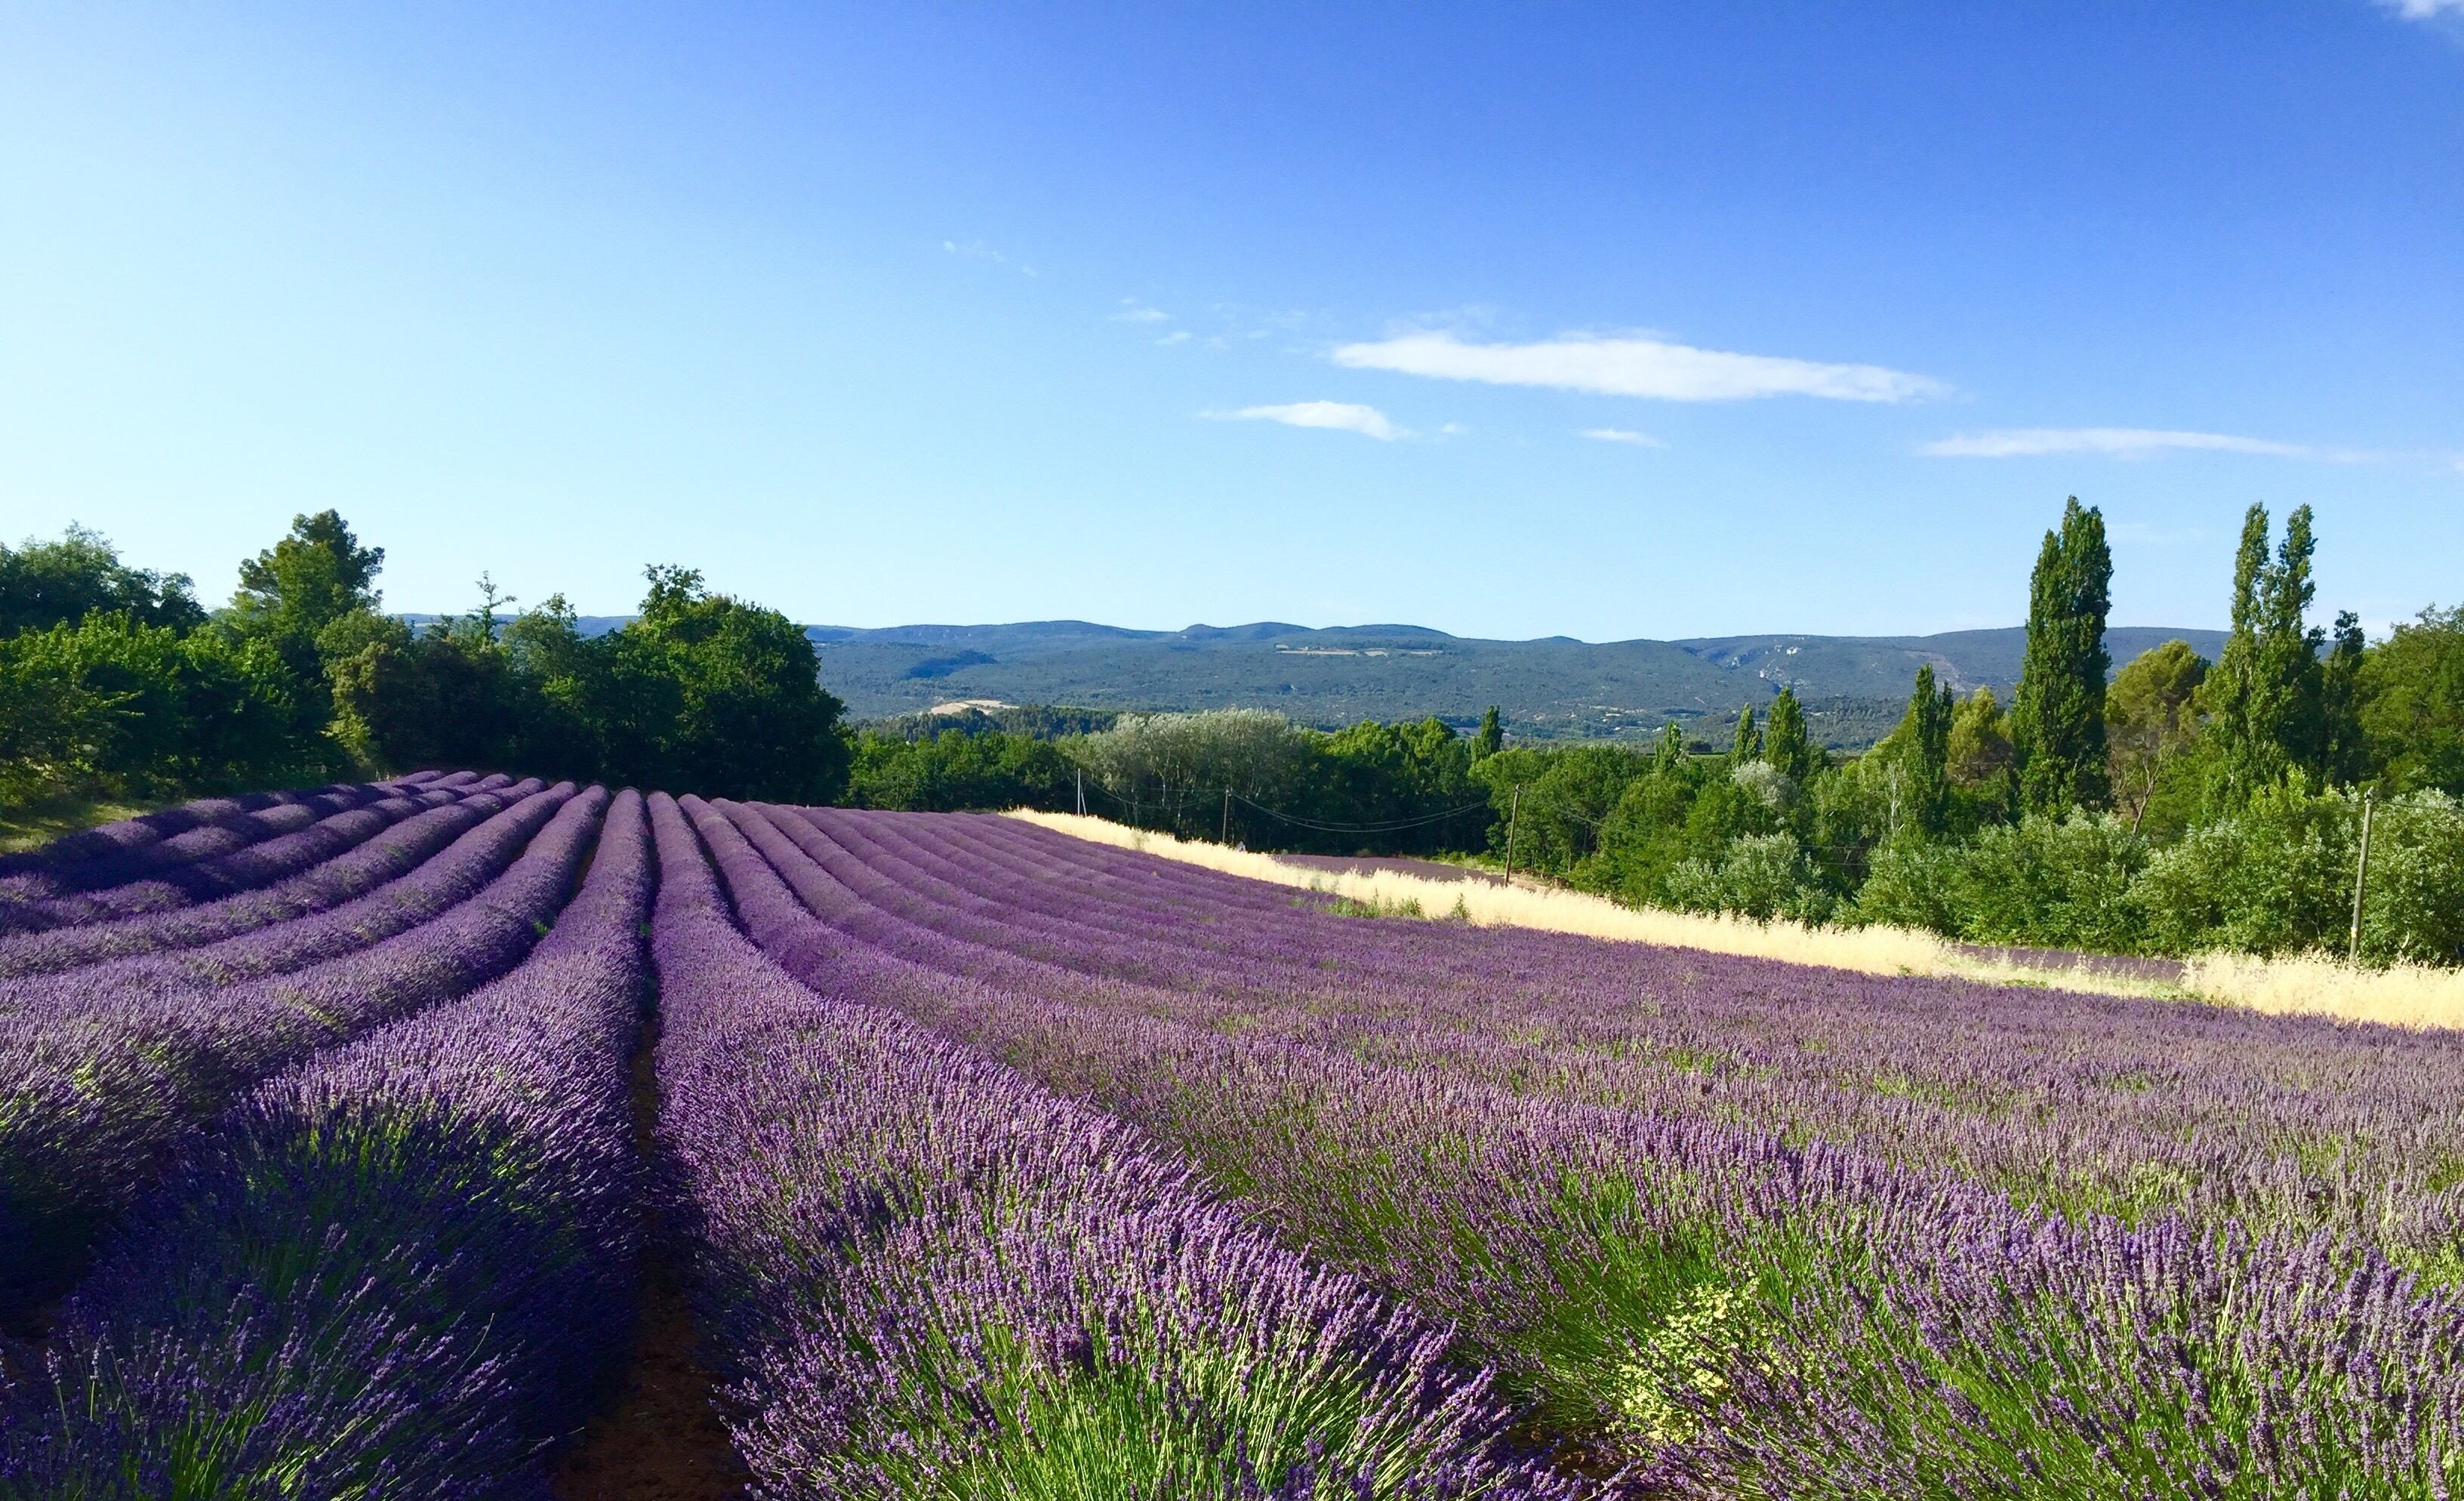 Trip to Provence - in the footsteps of Cezanne and Van Gogh